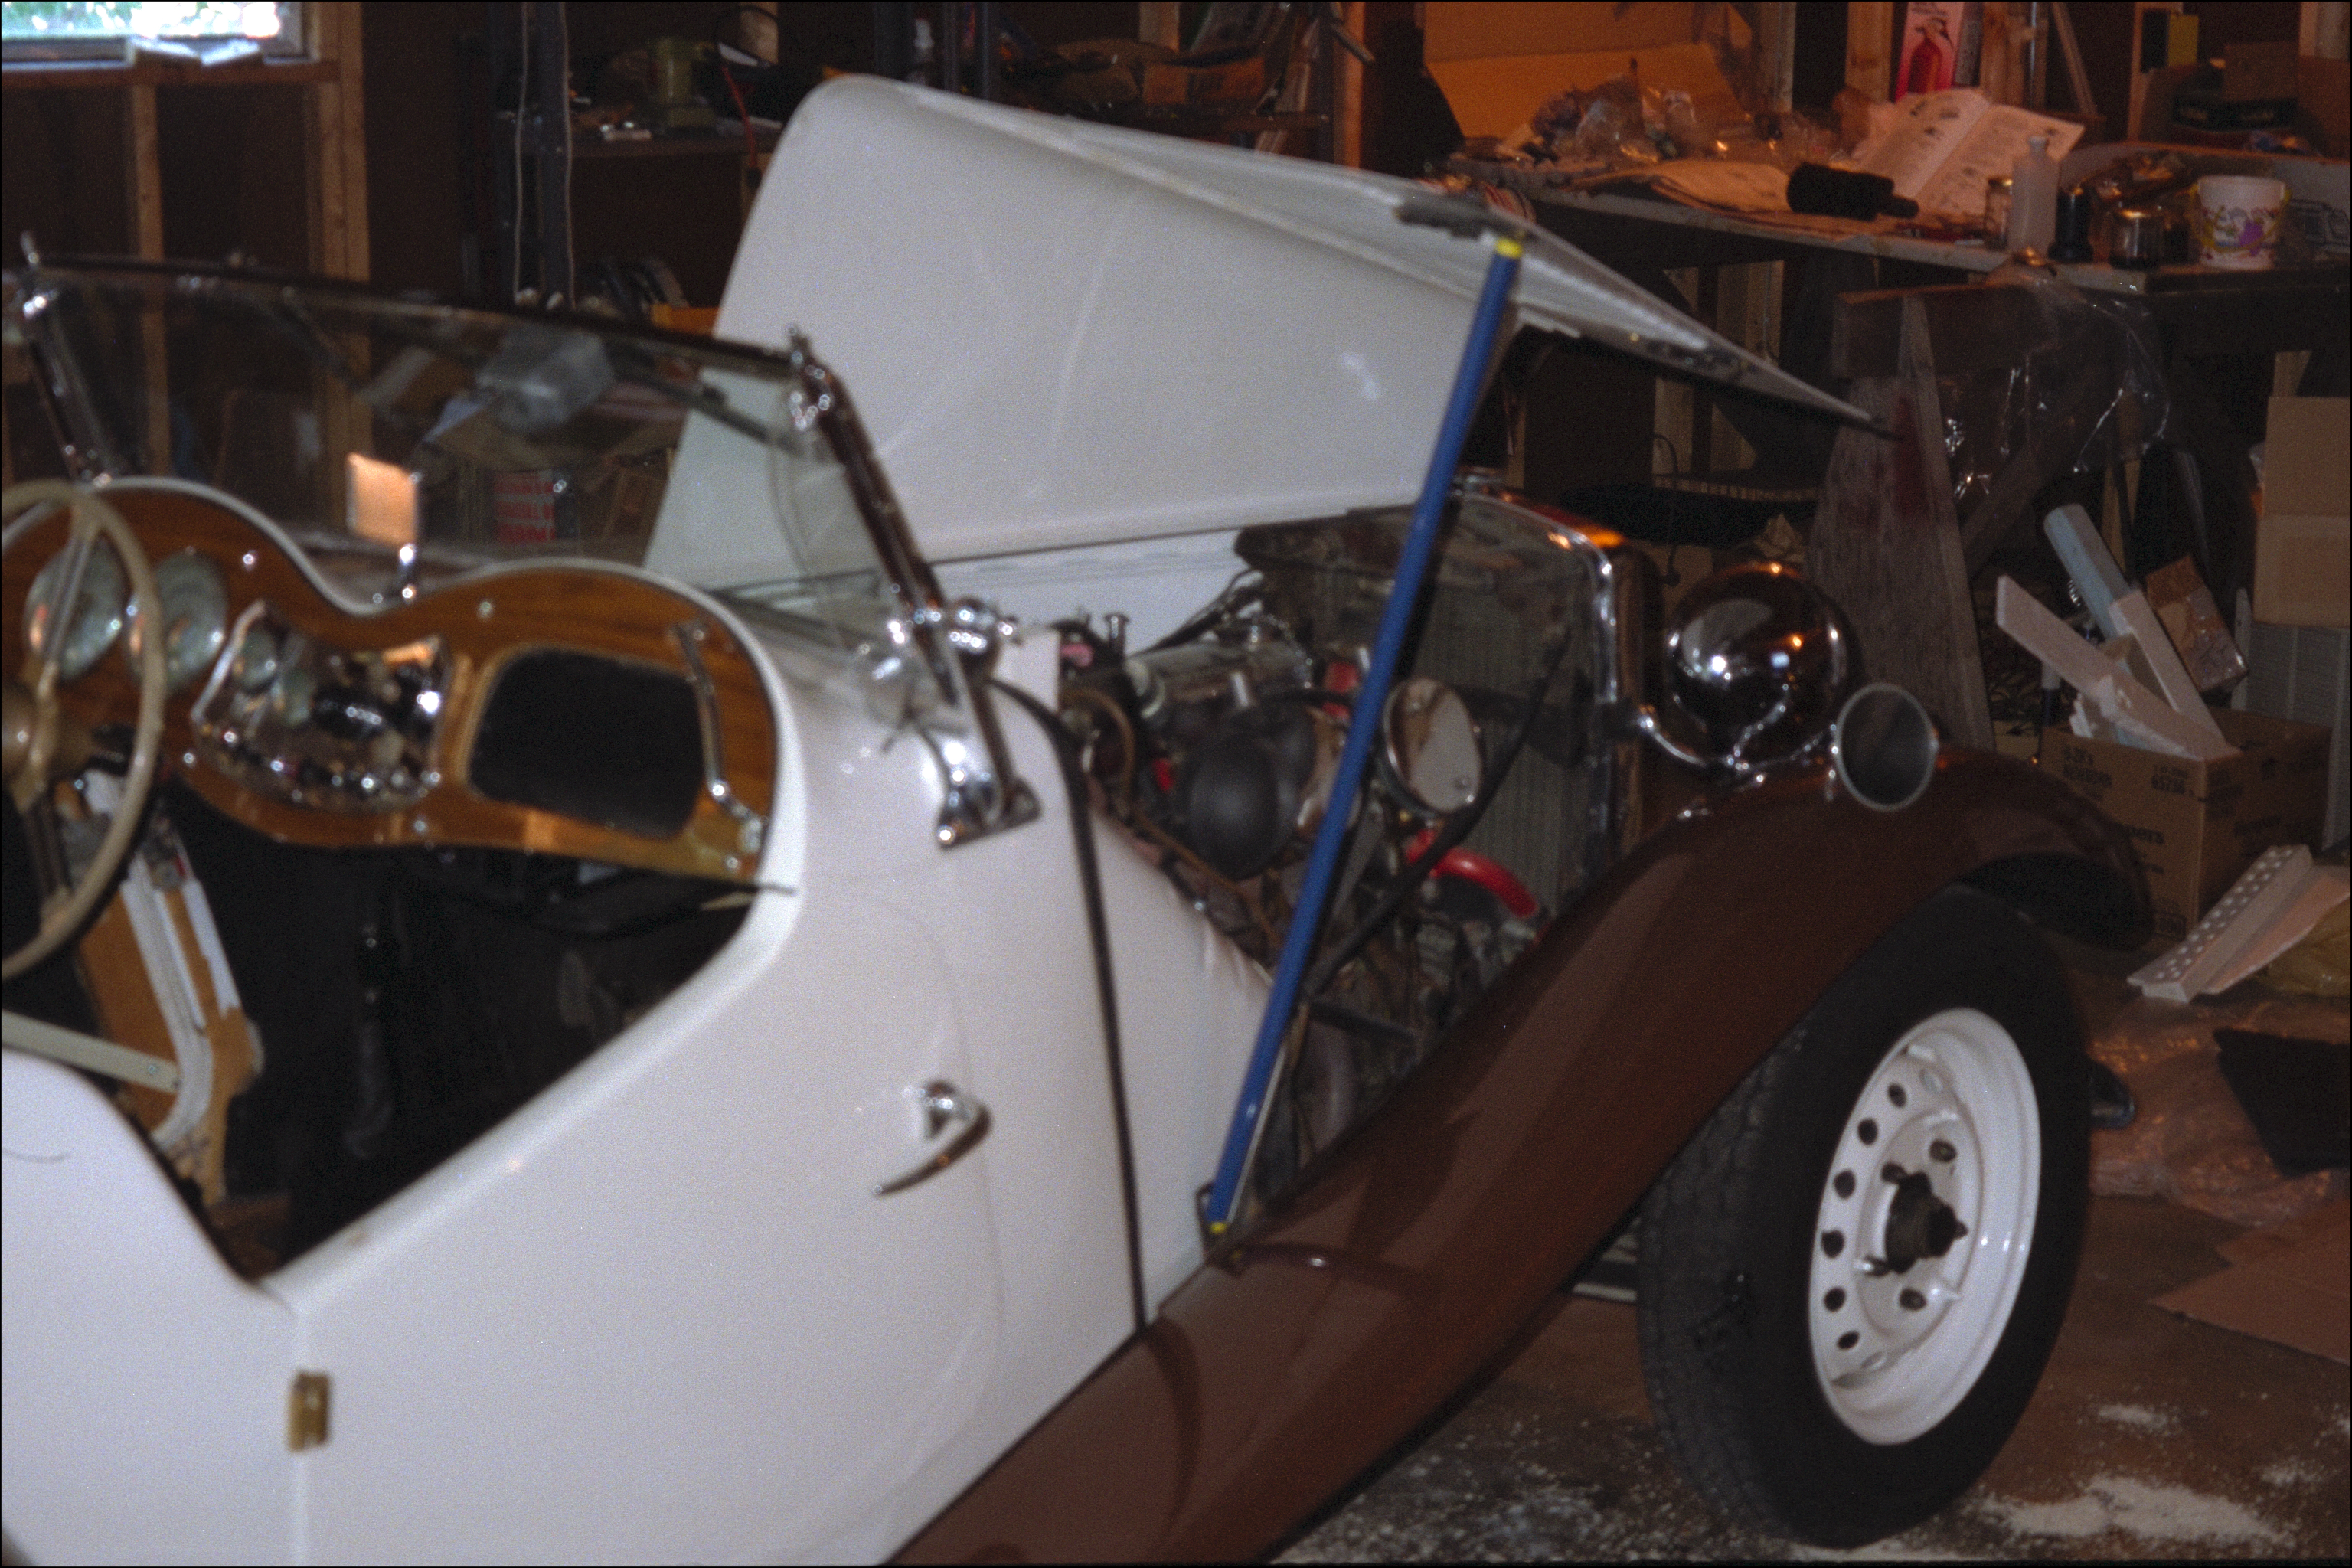 Engine compartment, from right rear